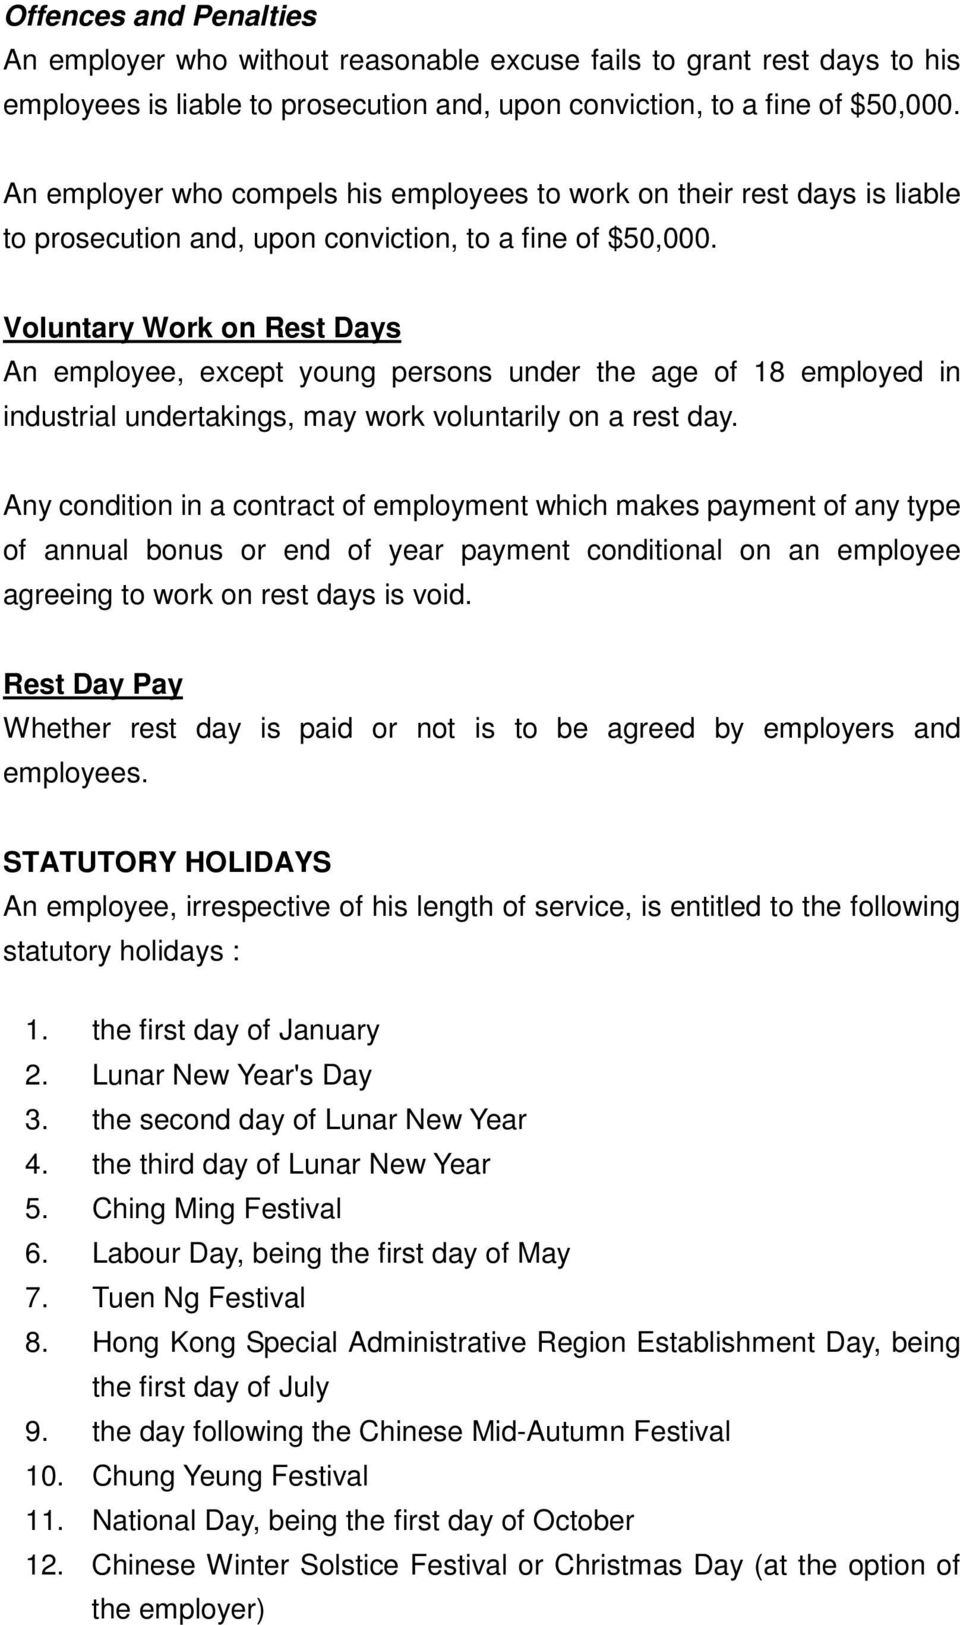 Voluntary Work on Rest Days An employee, except young persons under the age of 18 employed in industrial undertakings, may work voluntarily on a rest day.